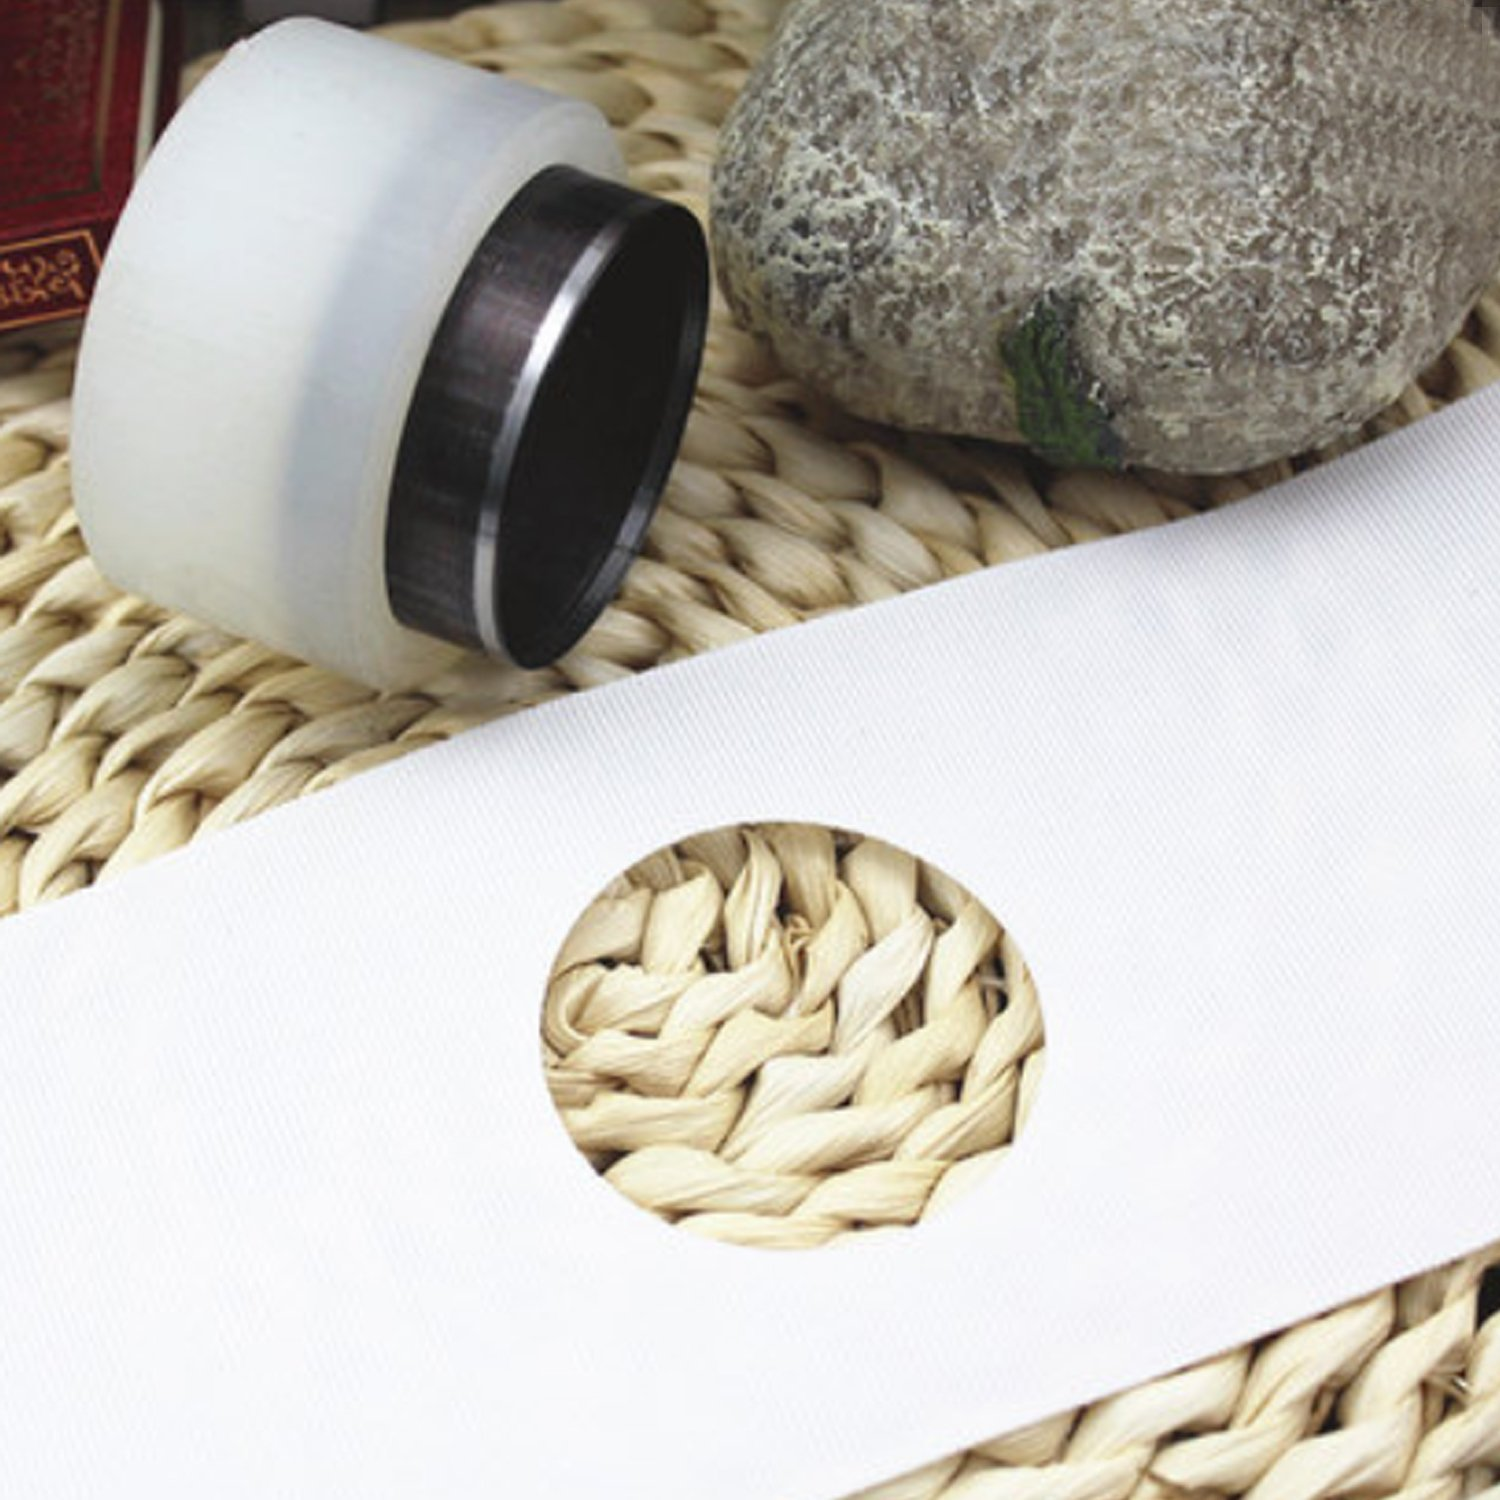 Household Portable Handle Manual DIY Curtain Eyelets Roman Ring Hole Punchers Tools Machines Makers Accessories